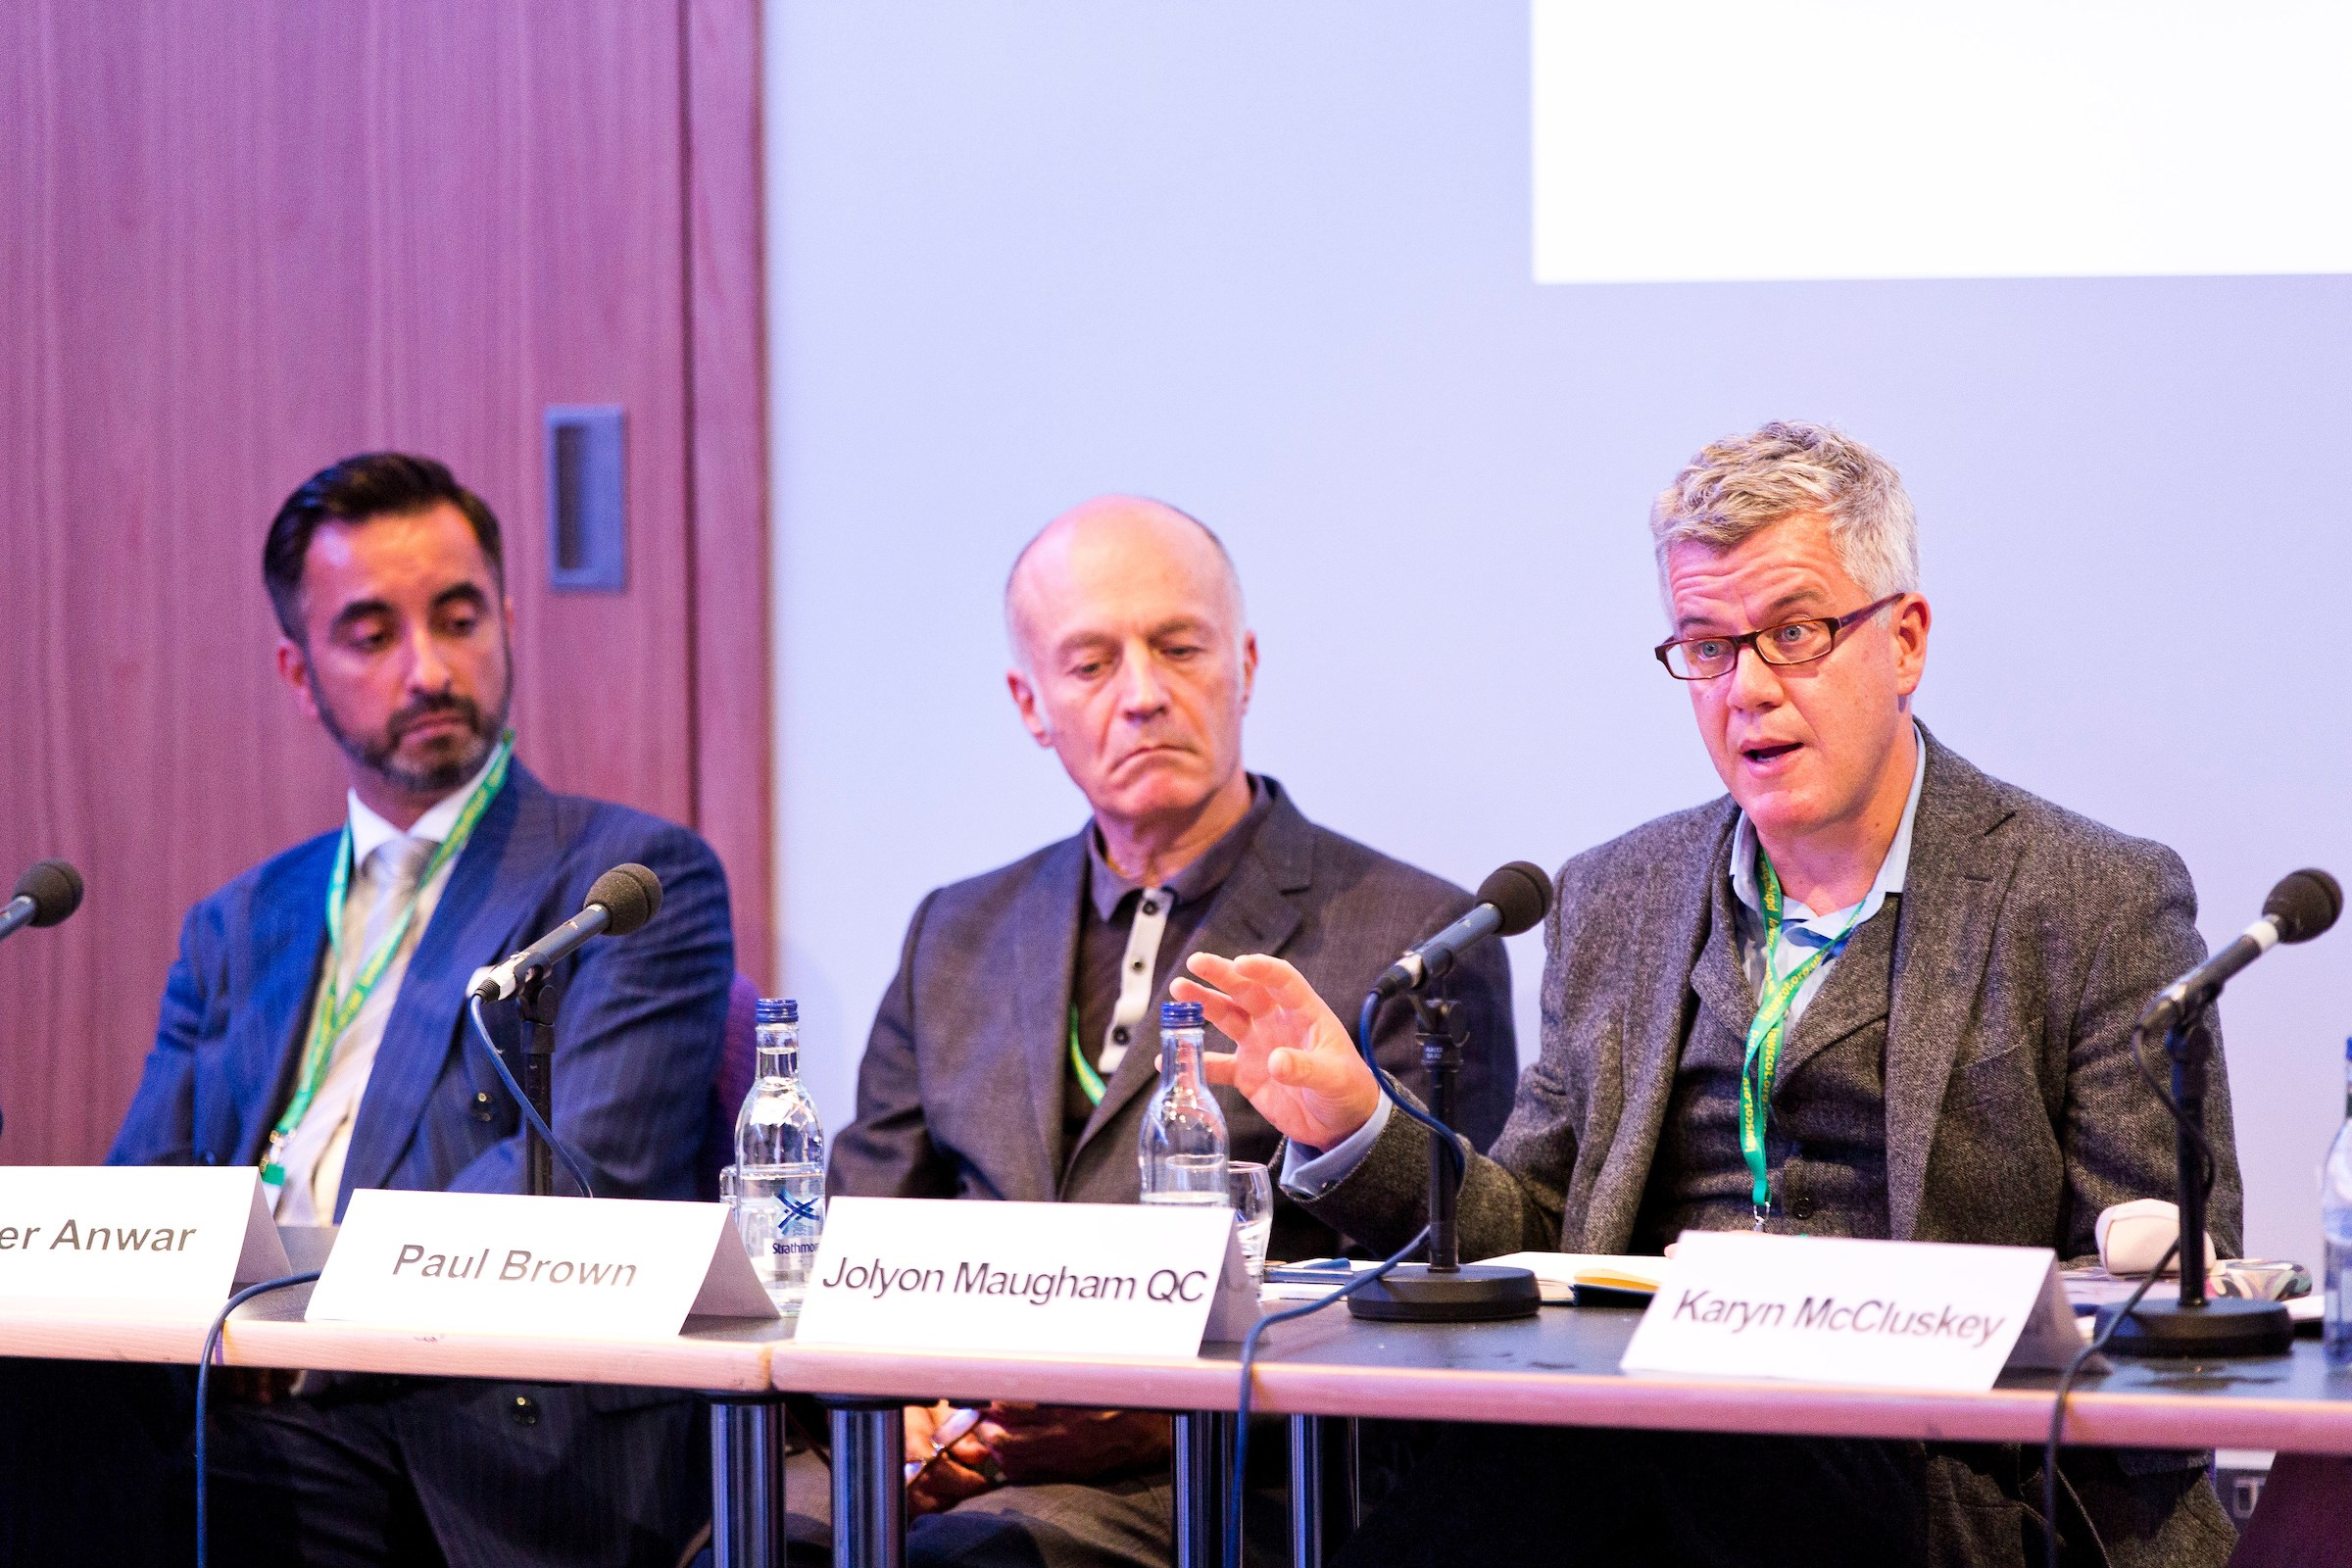 Access to justice panellists Aamer Anwar, Paul Brown and Jolyon Maugham QC